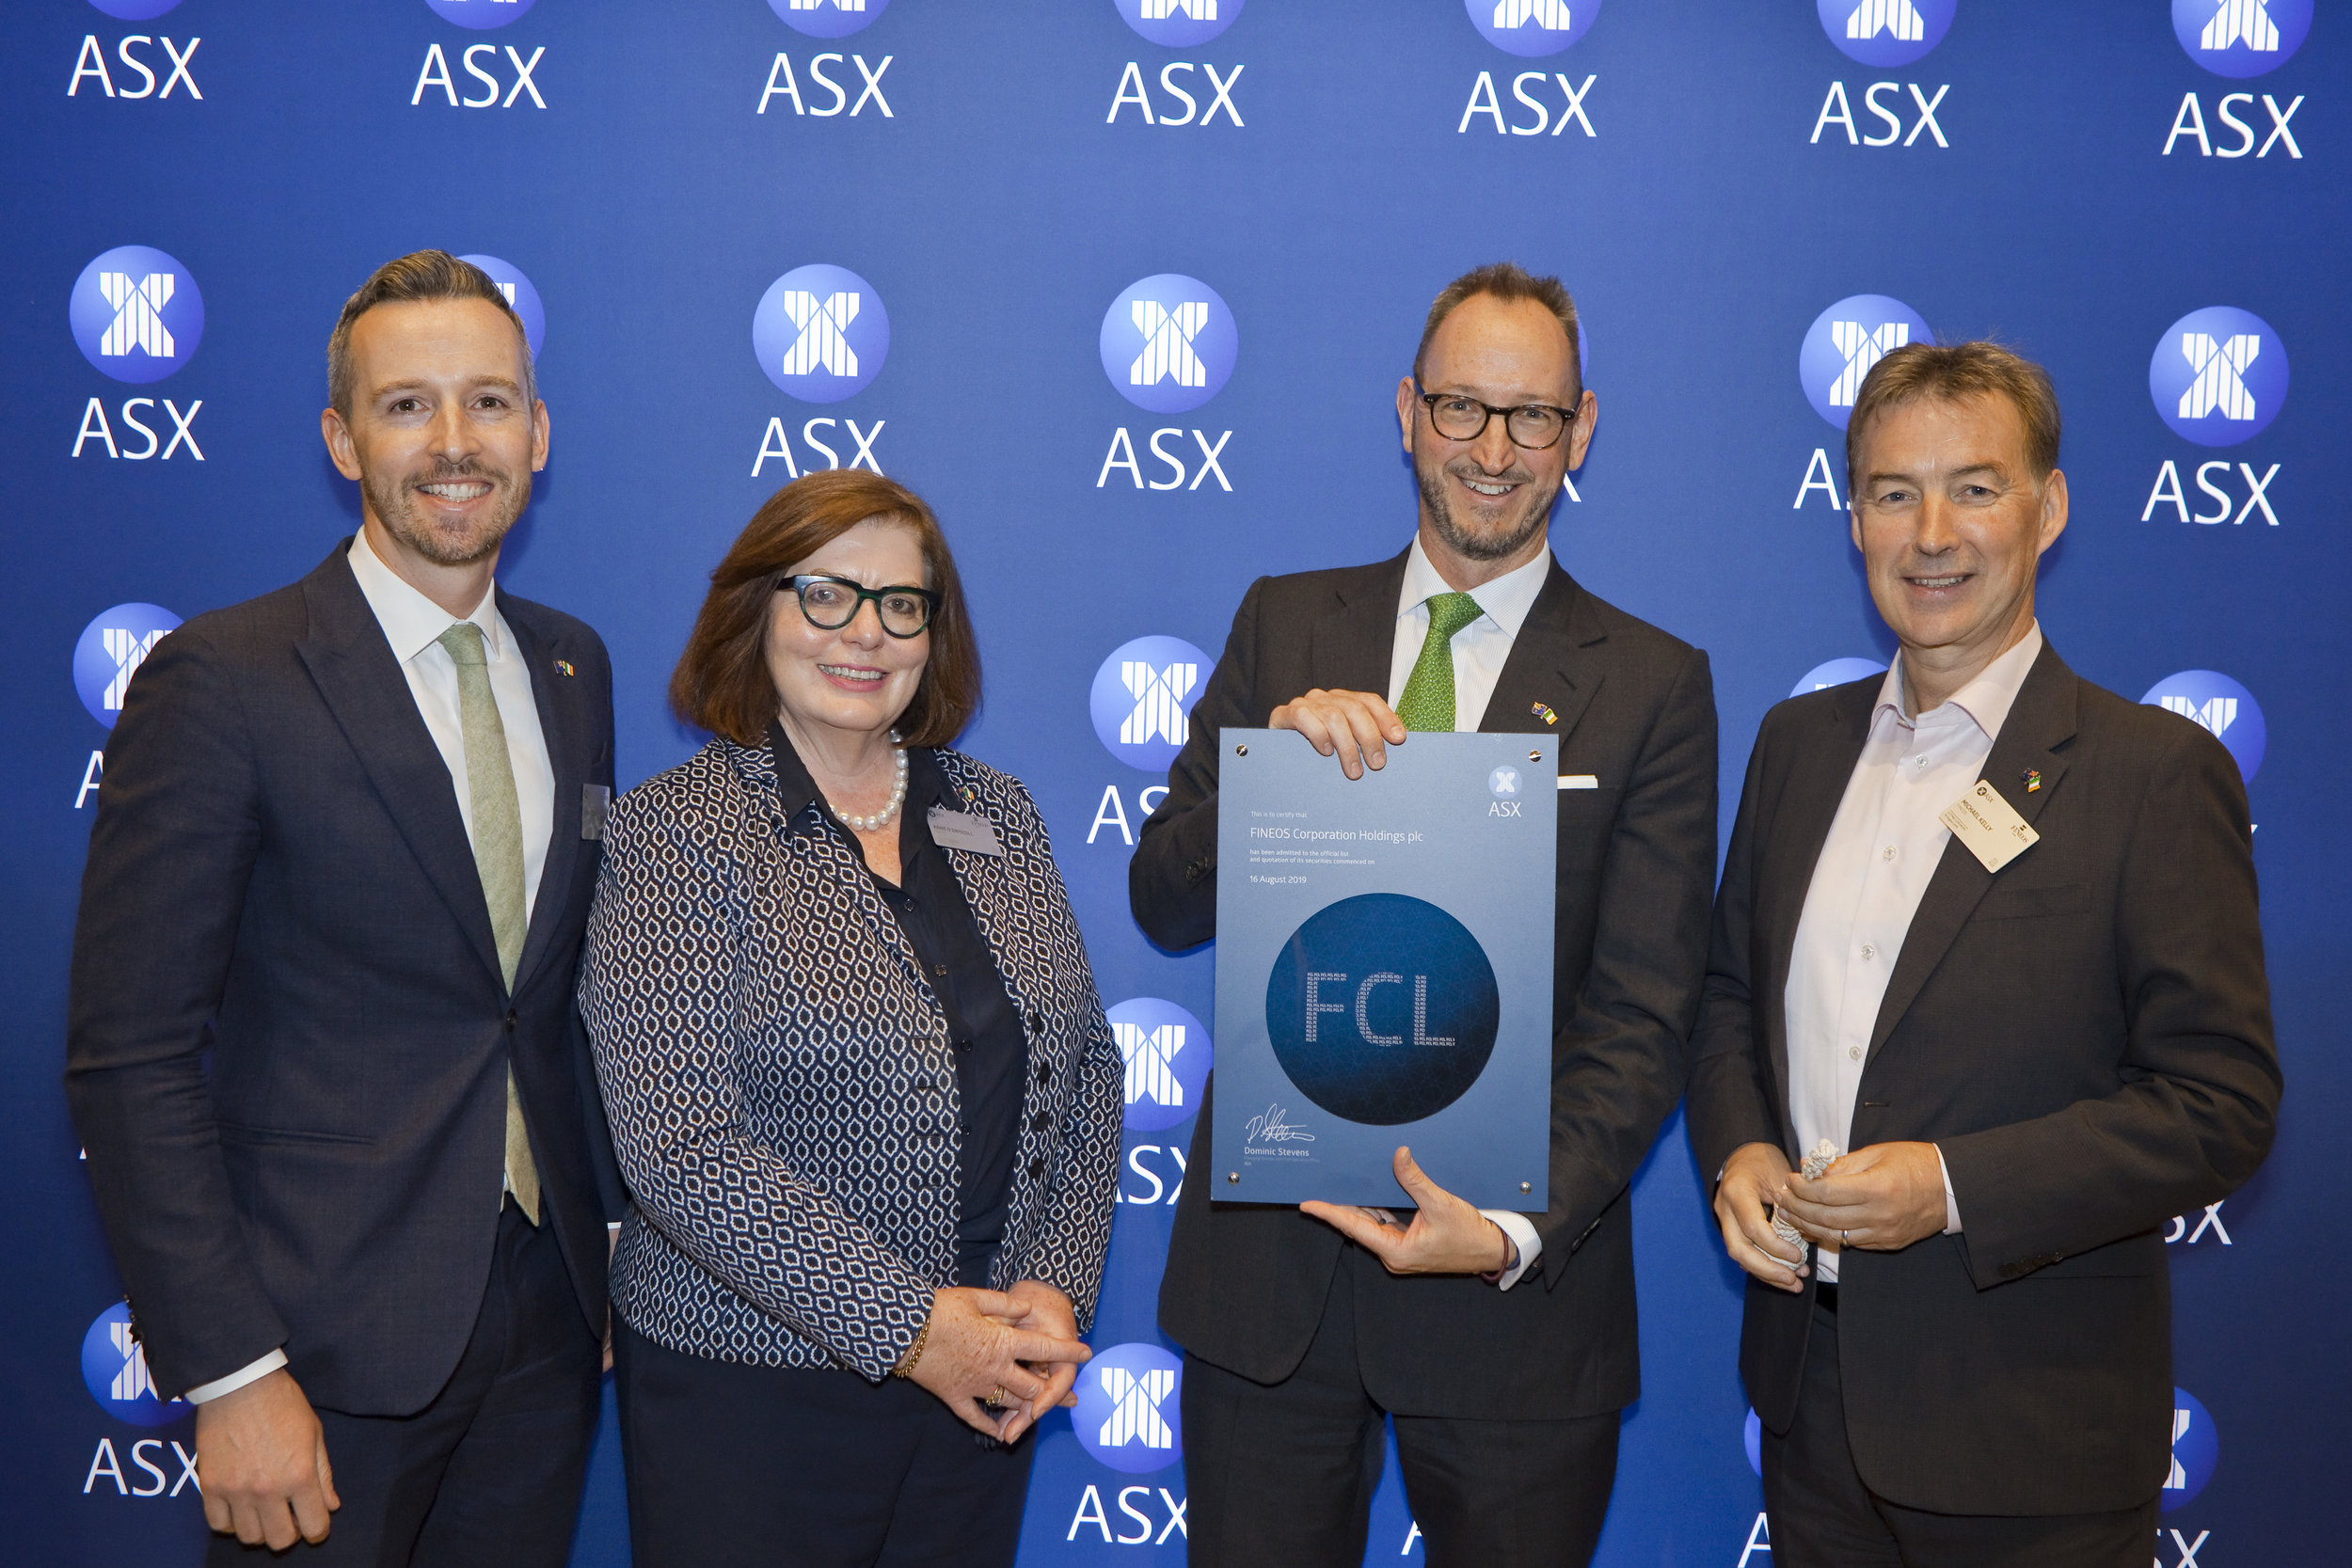 Irish Consul General Owen Feeney, FINEOS chairperson Anne Driscoll, the ASX's executive general manager of listings Max Cunningham, and CEO Michael Kelly celebrated the Irish company's connection with Australia.